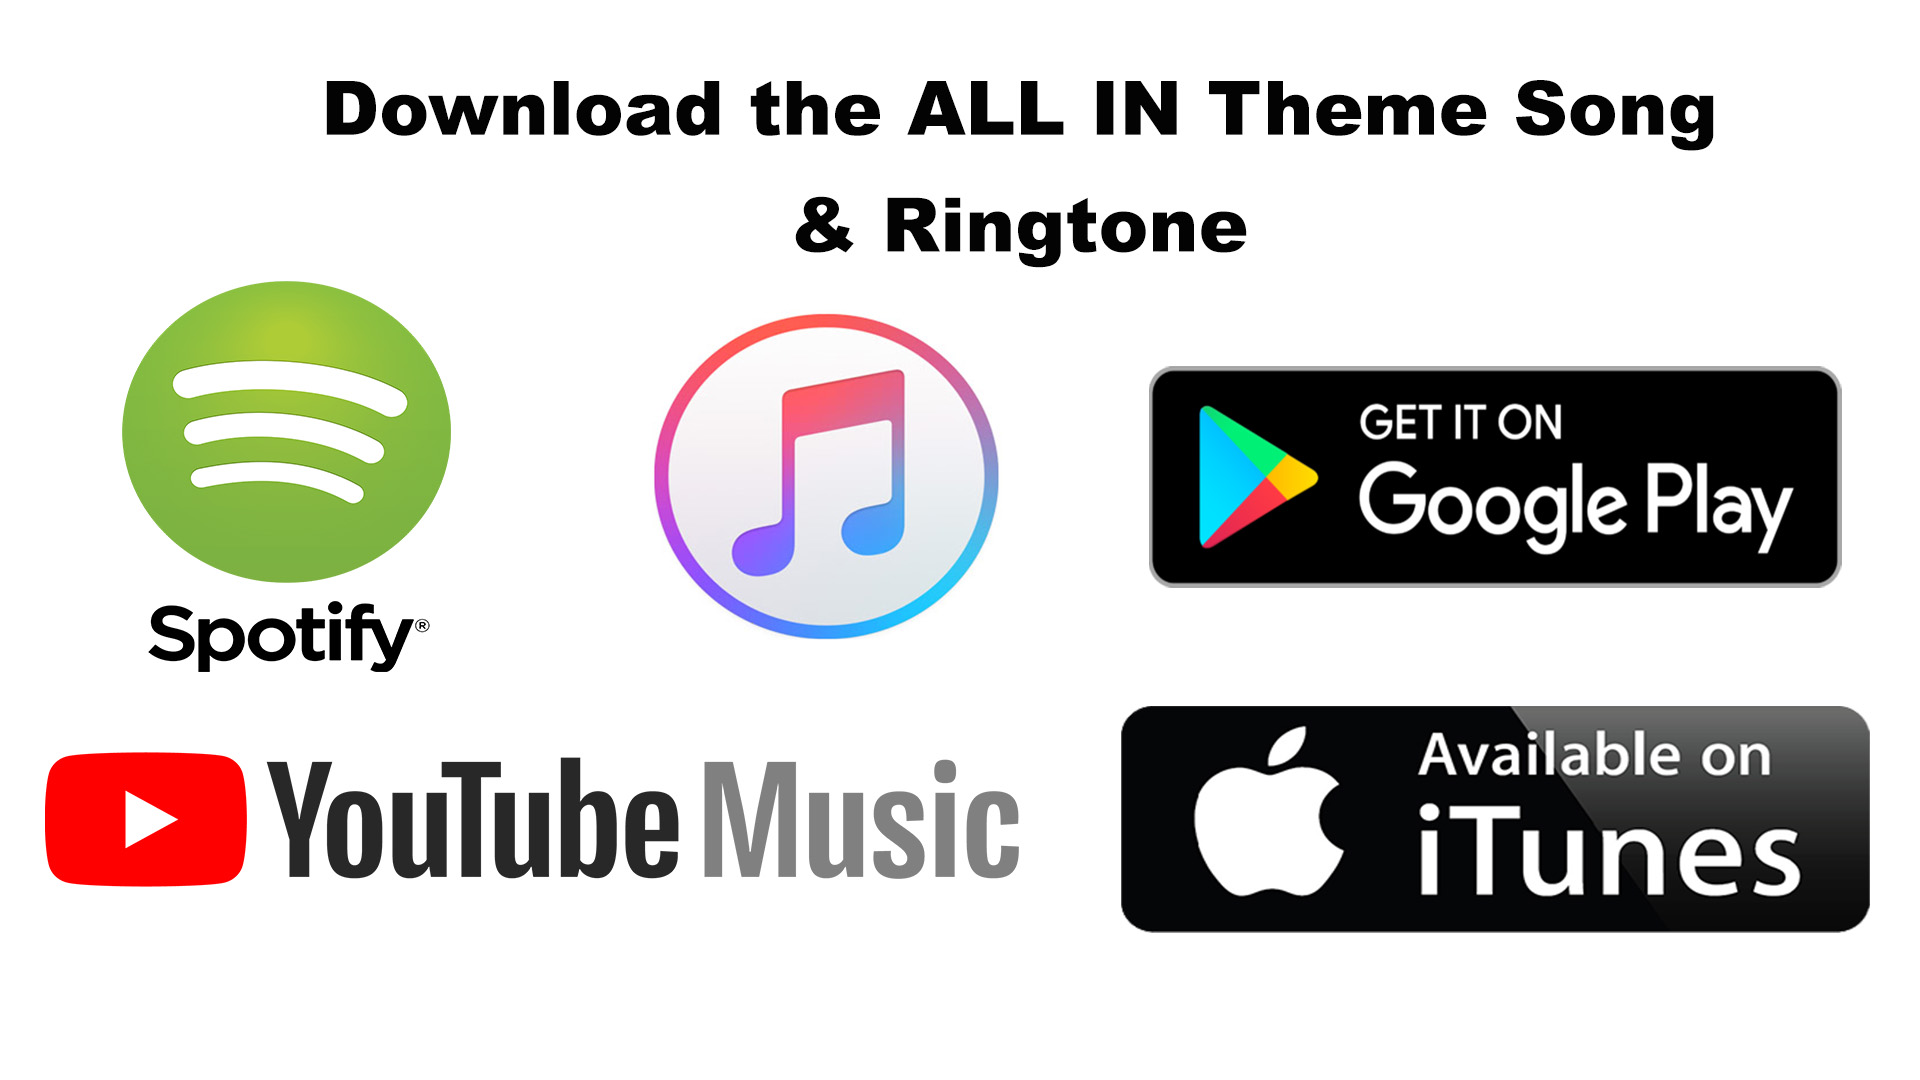 ALL IN Theme Song -